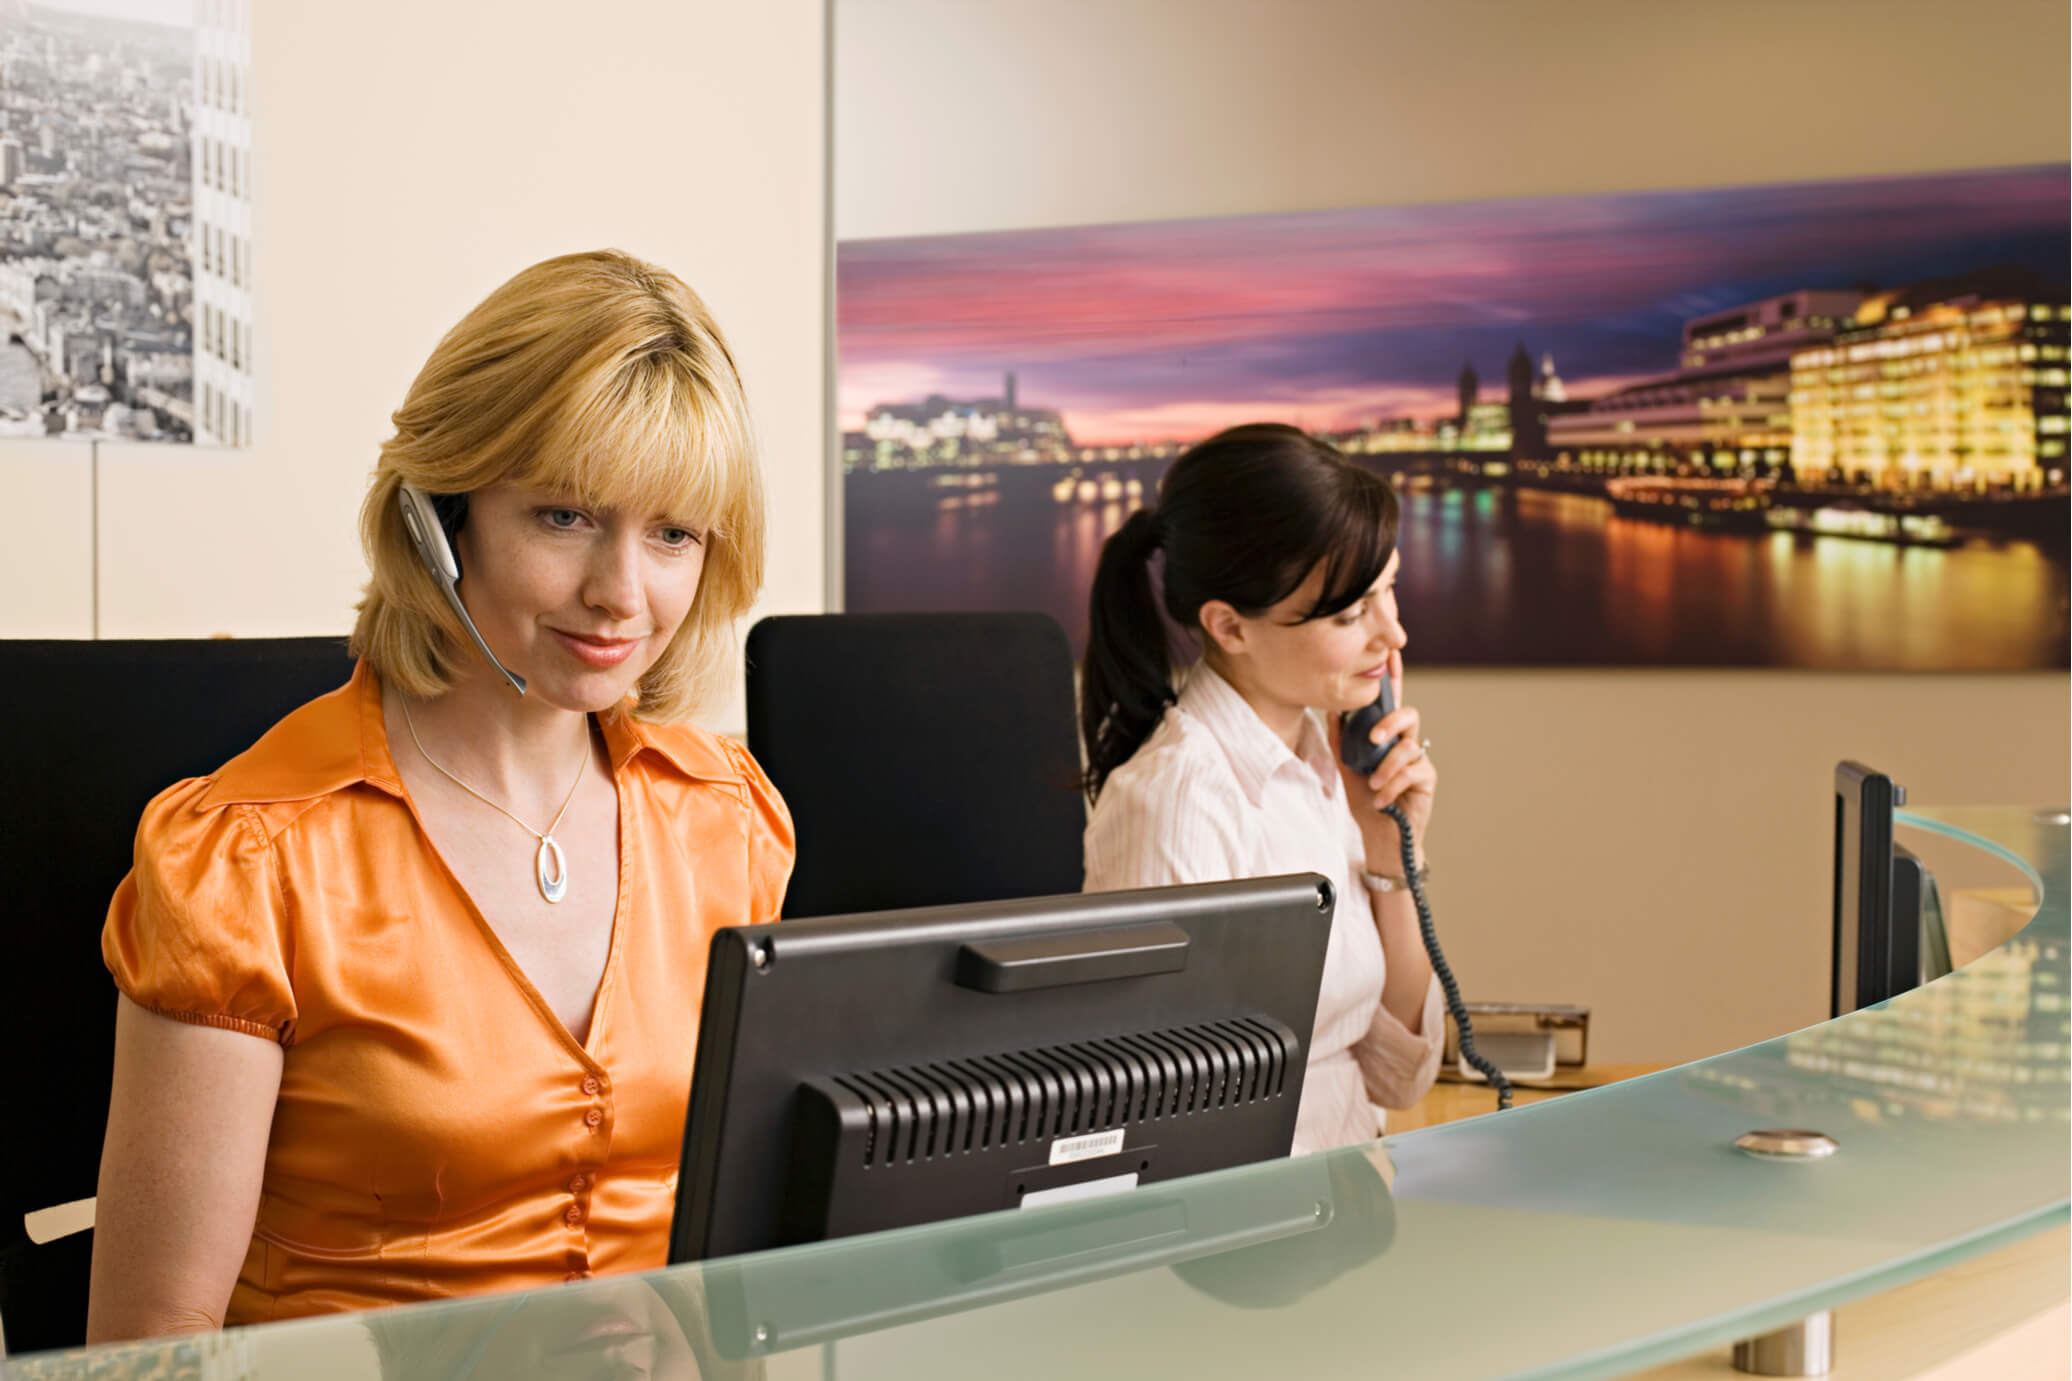 office systems technology picture of two women at a desk wit phone earpiece in ear looking at a computer with orange shirt and white shirt